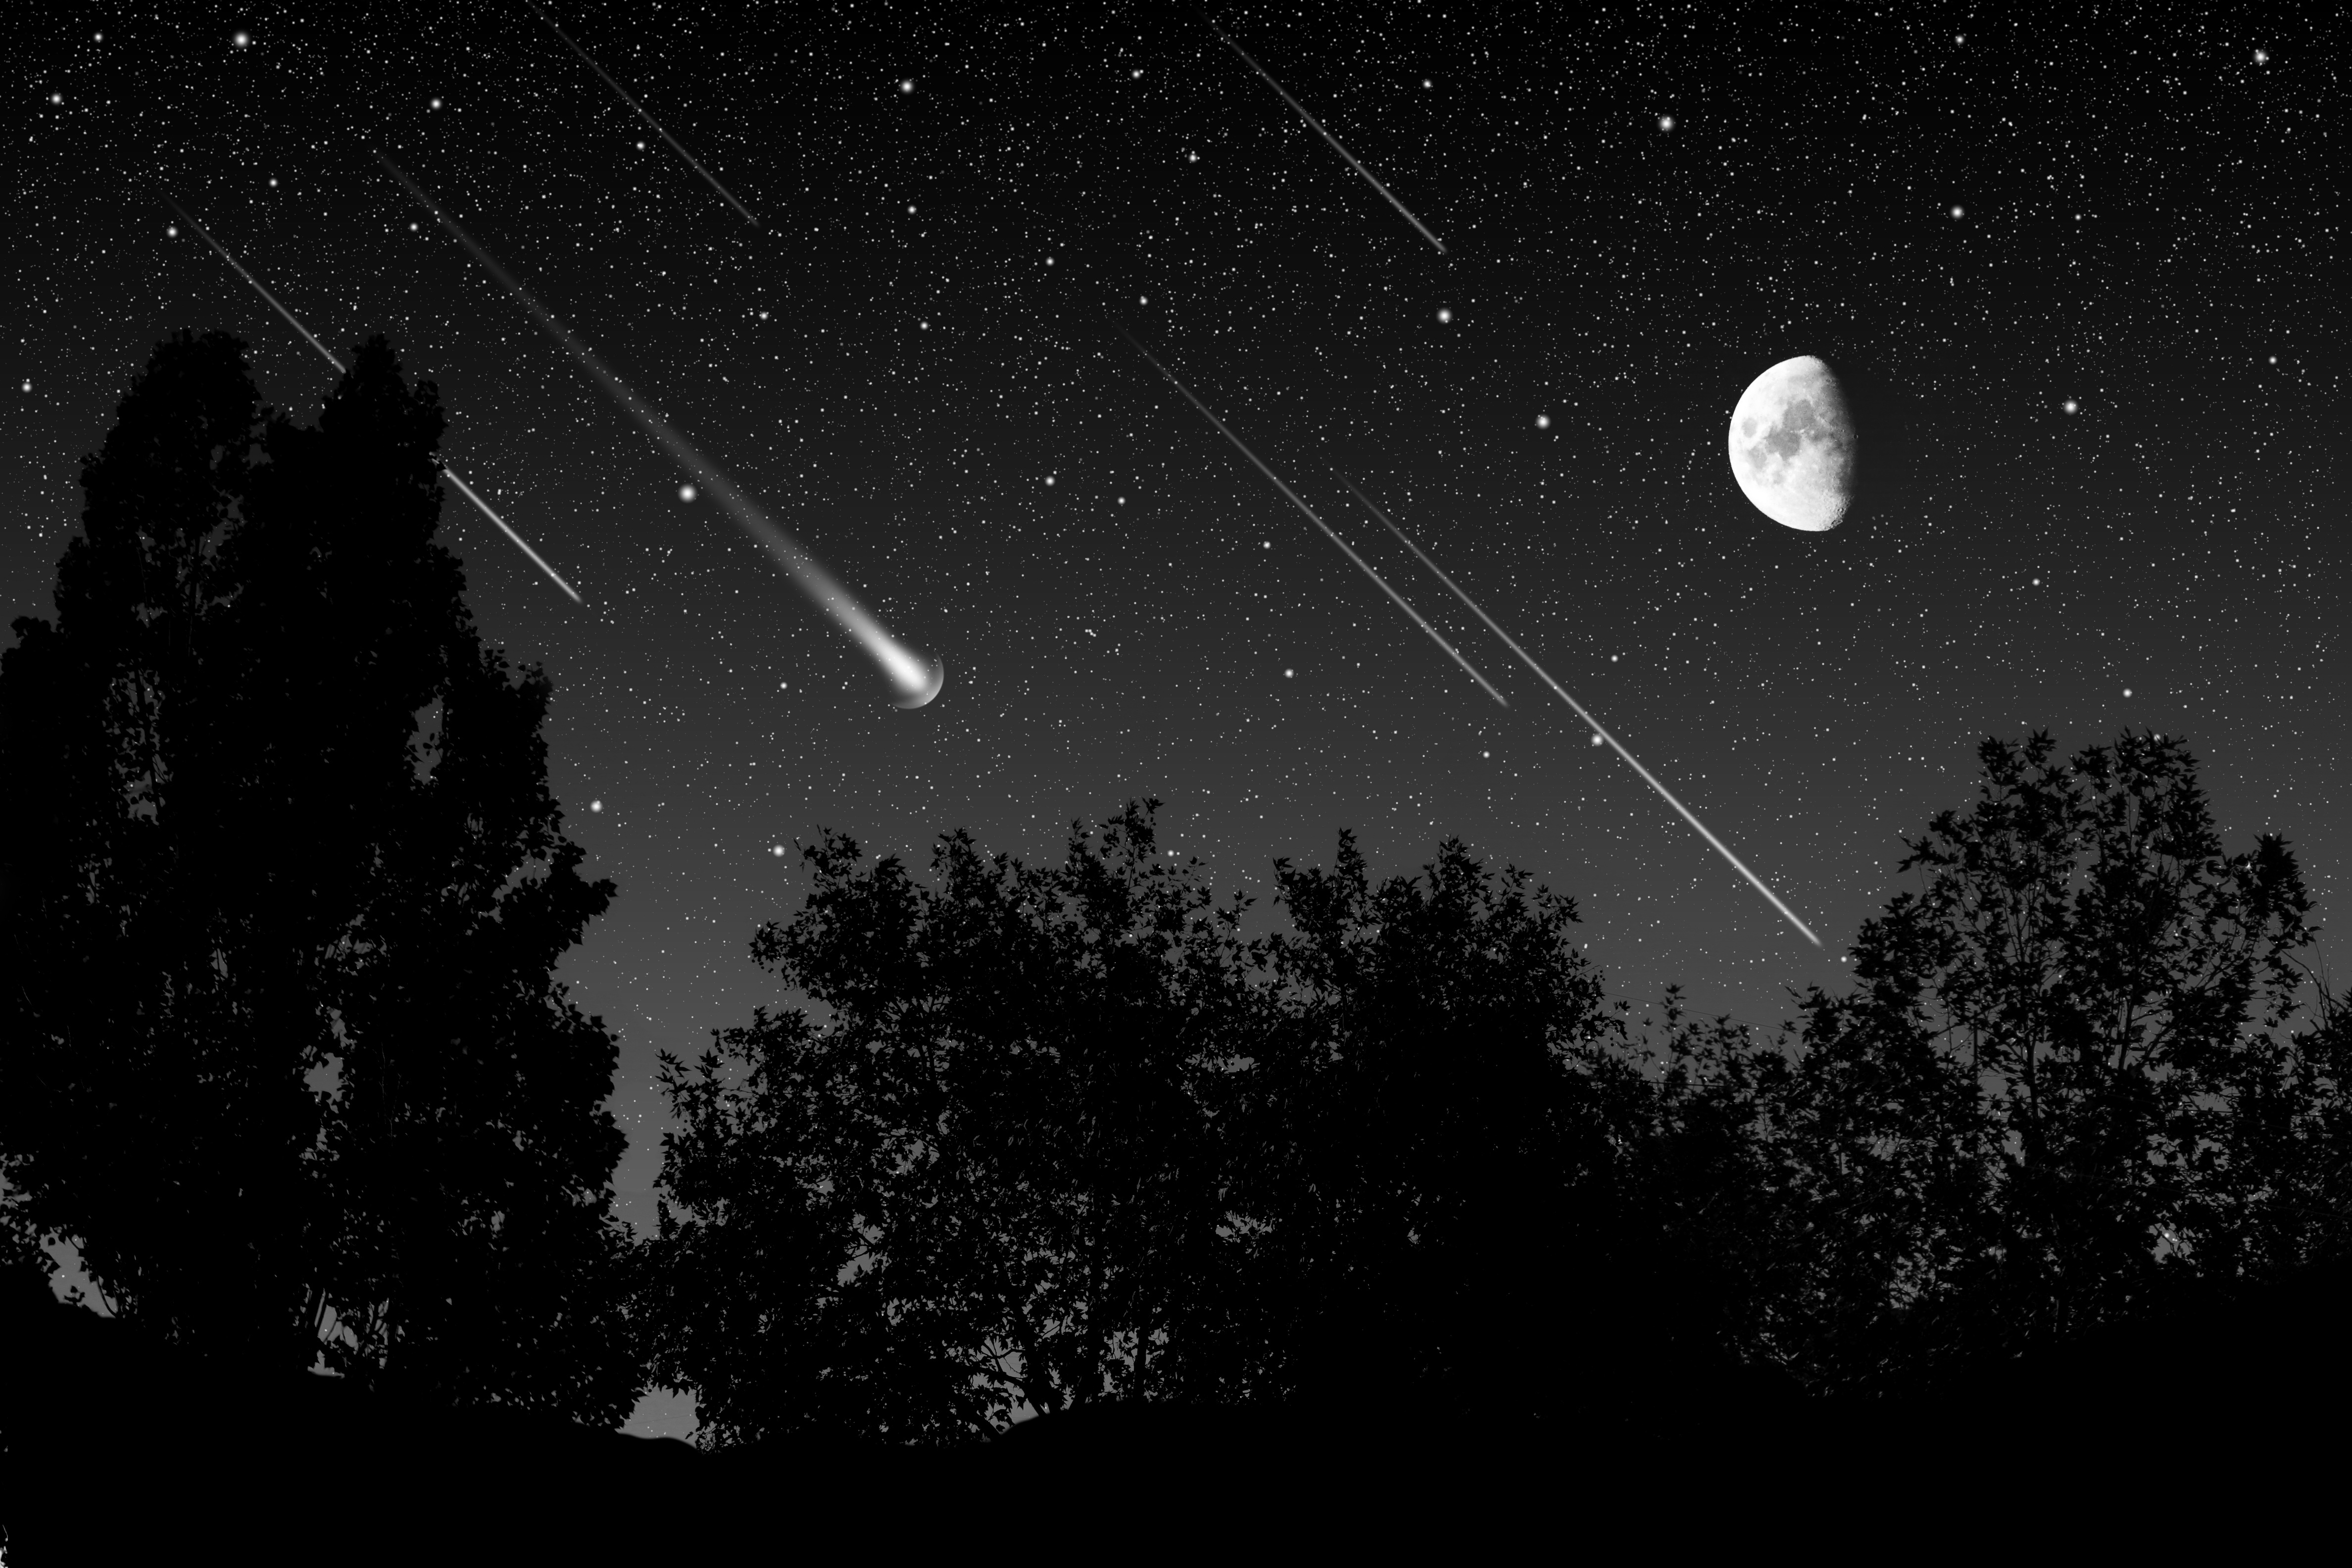 https://thnx.gr/wp-content/uploads/2015/05/meteor-shower-2.jpg